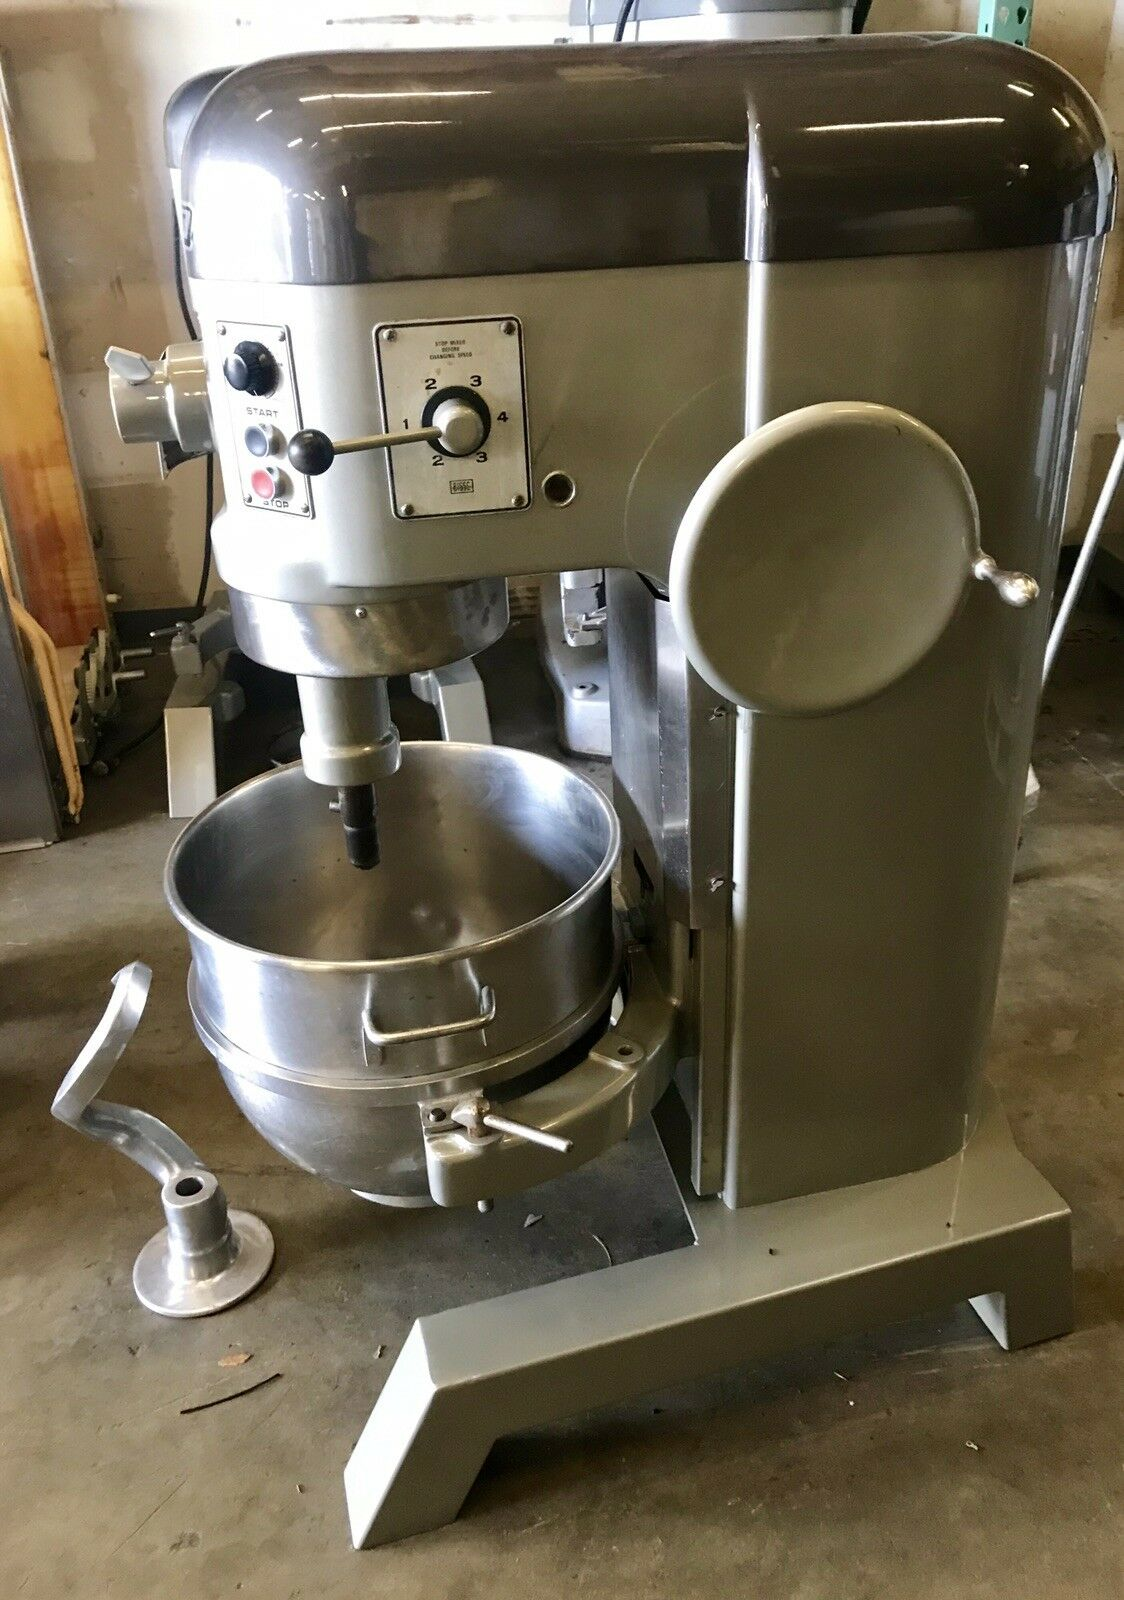 Hobart H600T Commercial 60 Quart Mixer 3 Phase 230V 60QT wow!